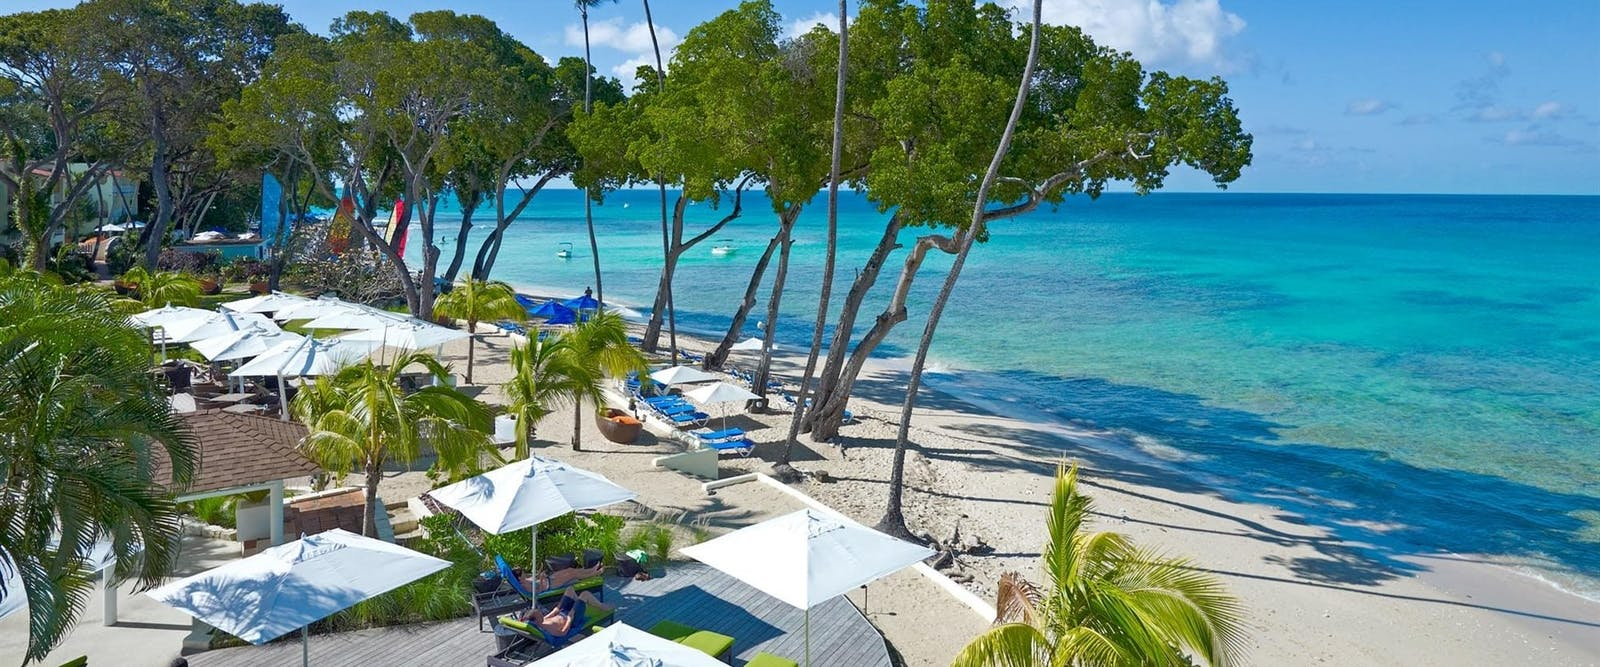 Beach Deck at Tamarind by Elegant Hotels, Barbados